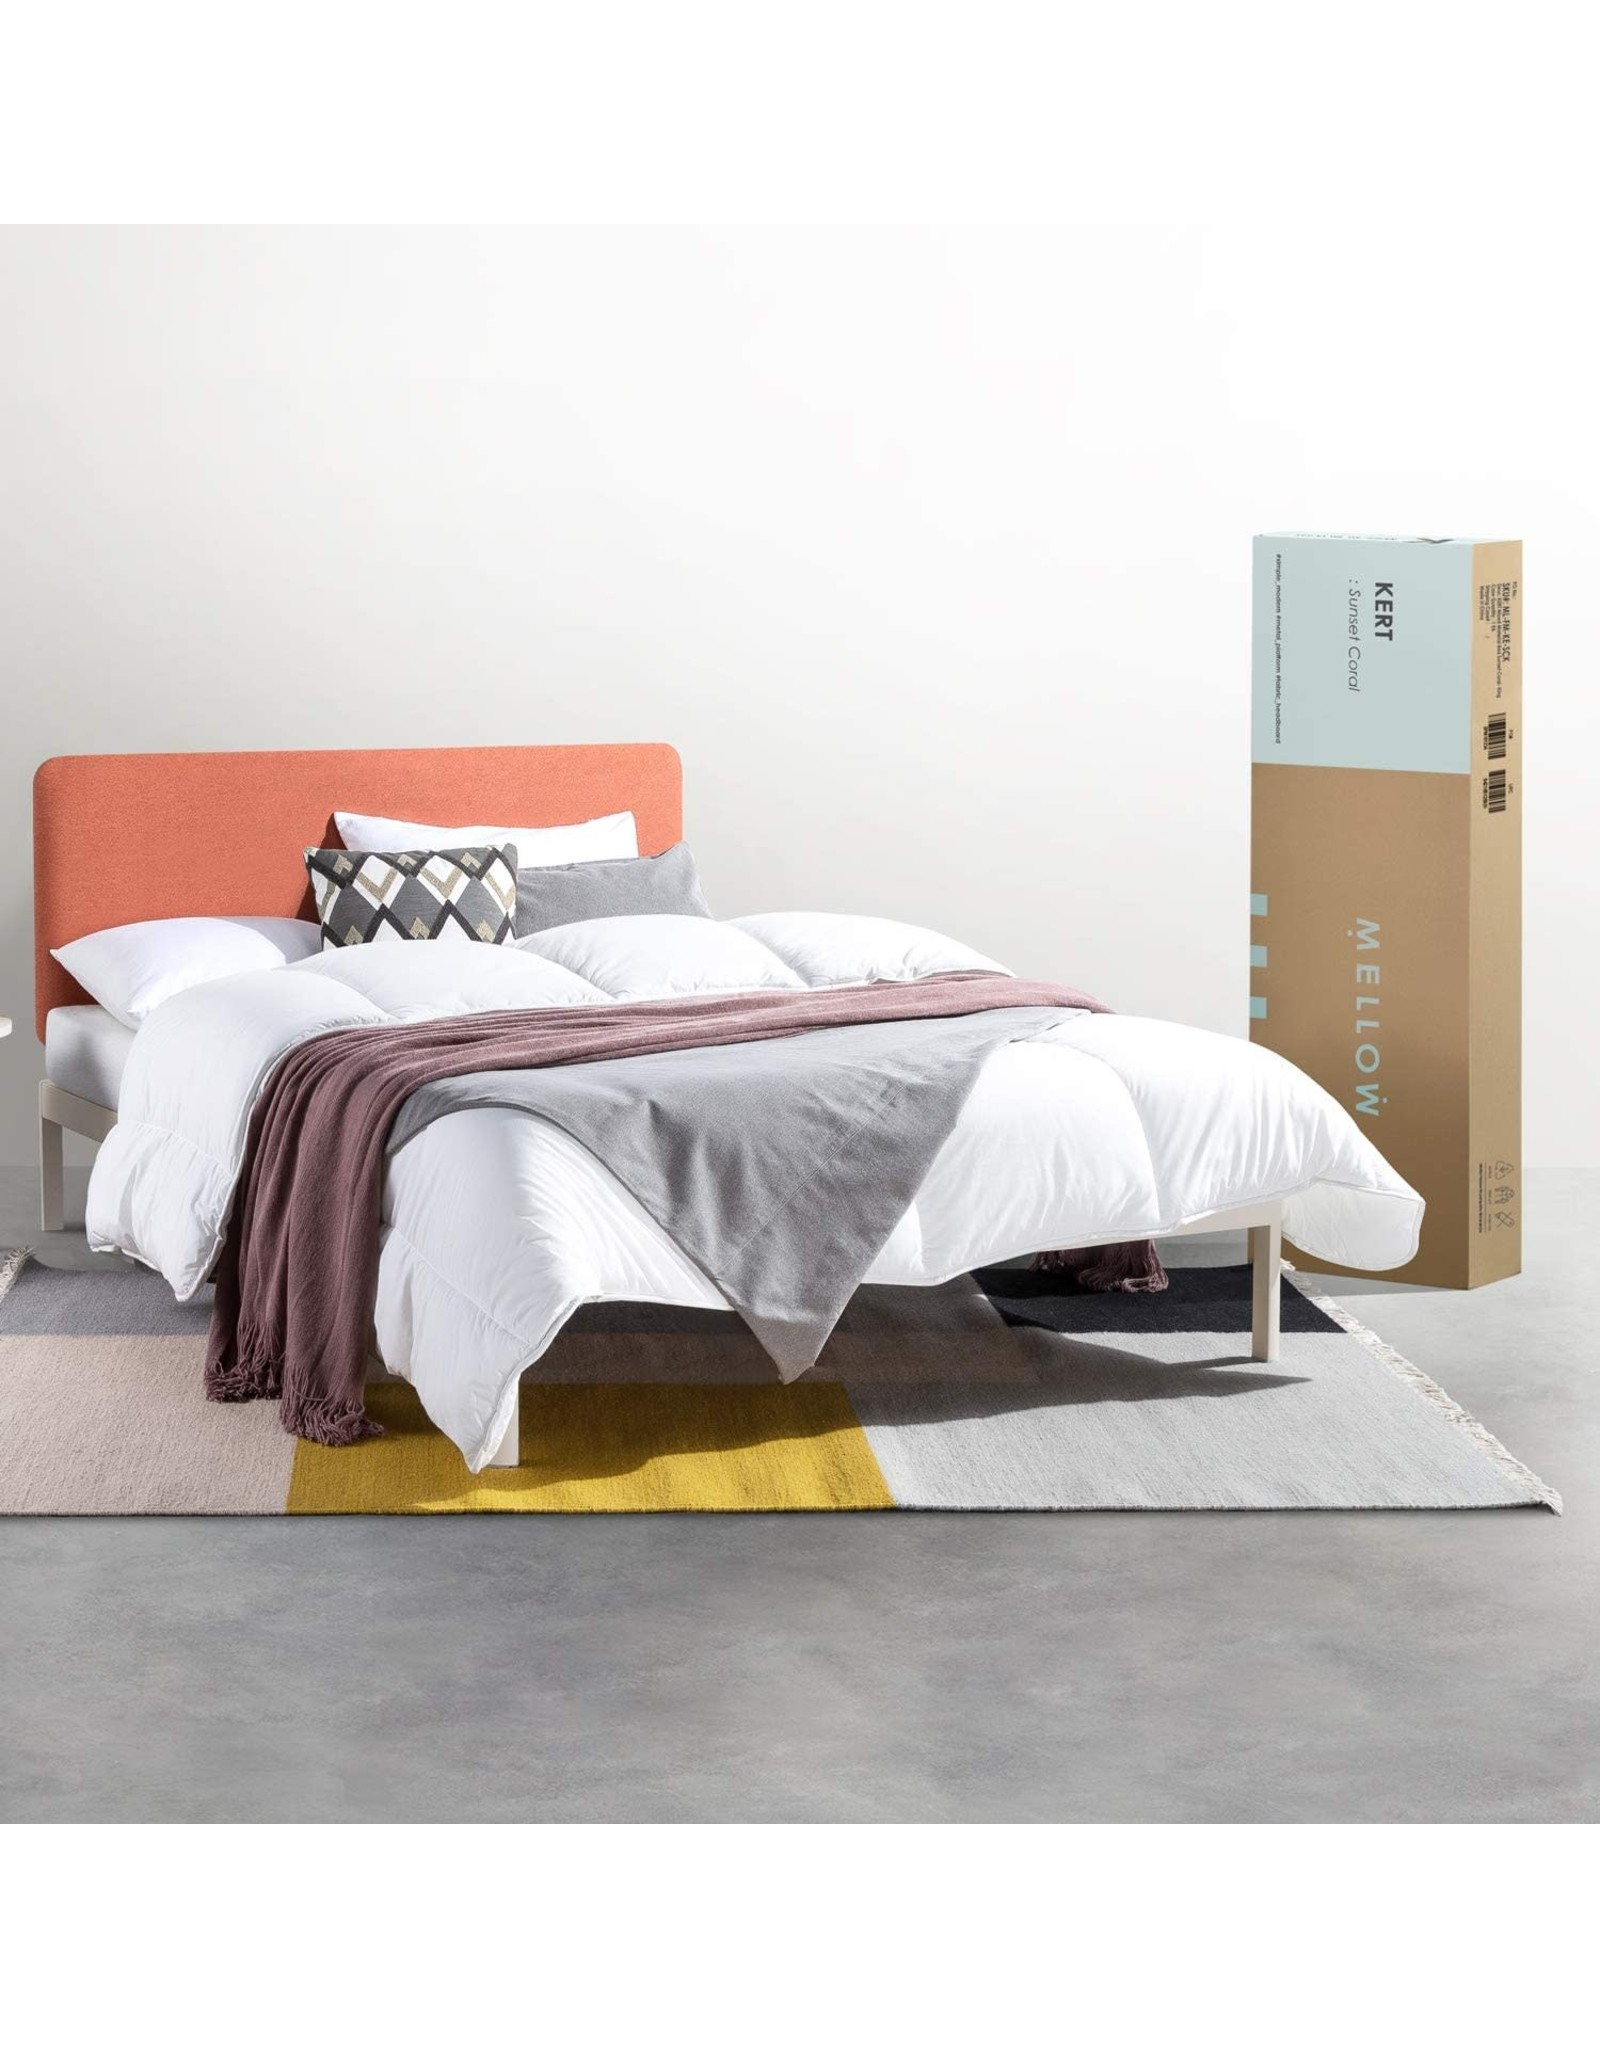 Mellow Mellow KERT - Metal Platform Bed with Fabric Headboard, Easy Assembly, Rounded Legs and Corners, King, Sunset Coral (ML-FM-KE-SCK)